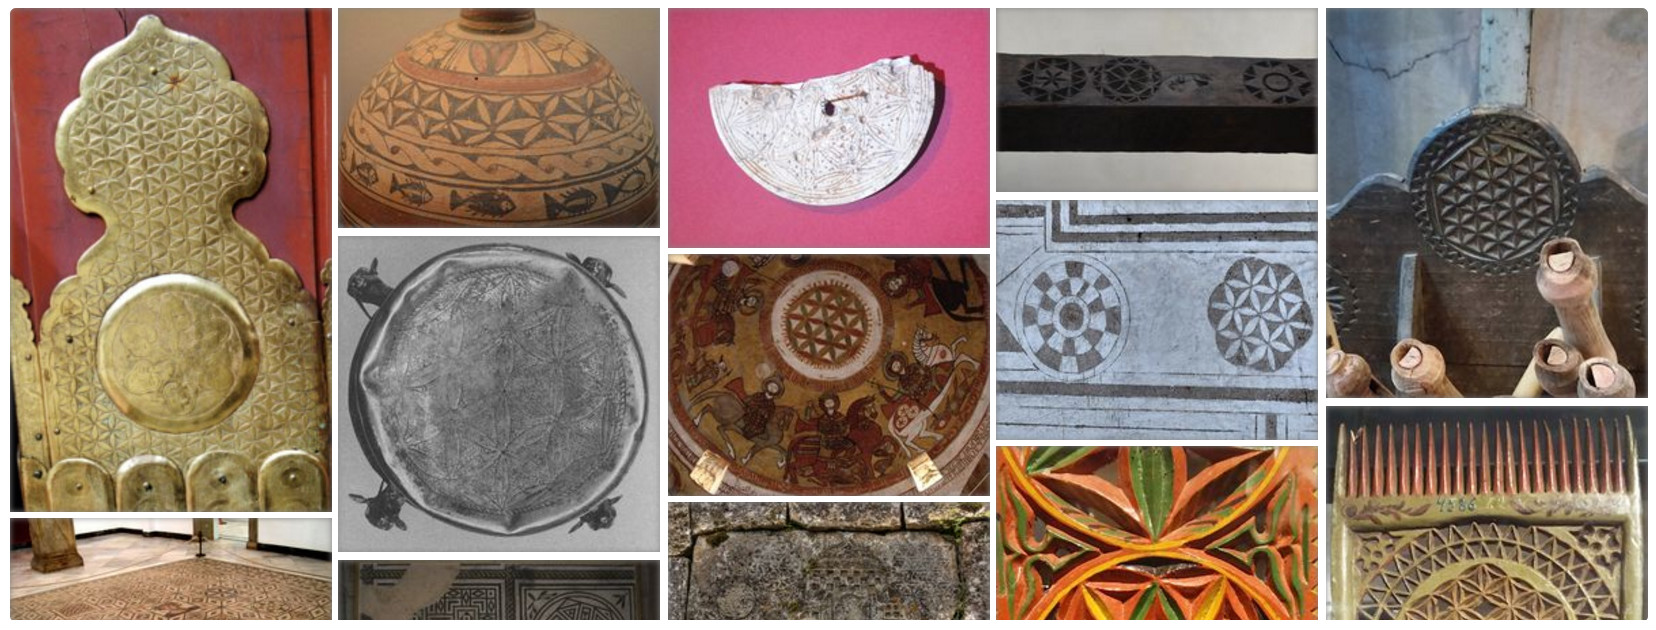 Artifacts of the FOL potpourri from Pinterest board